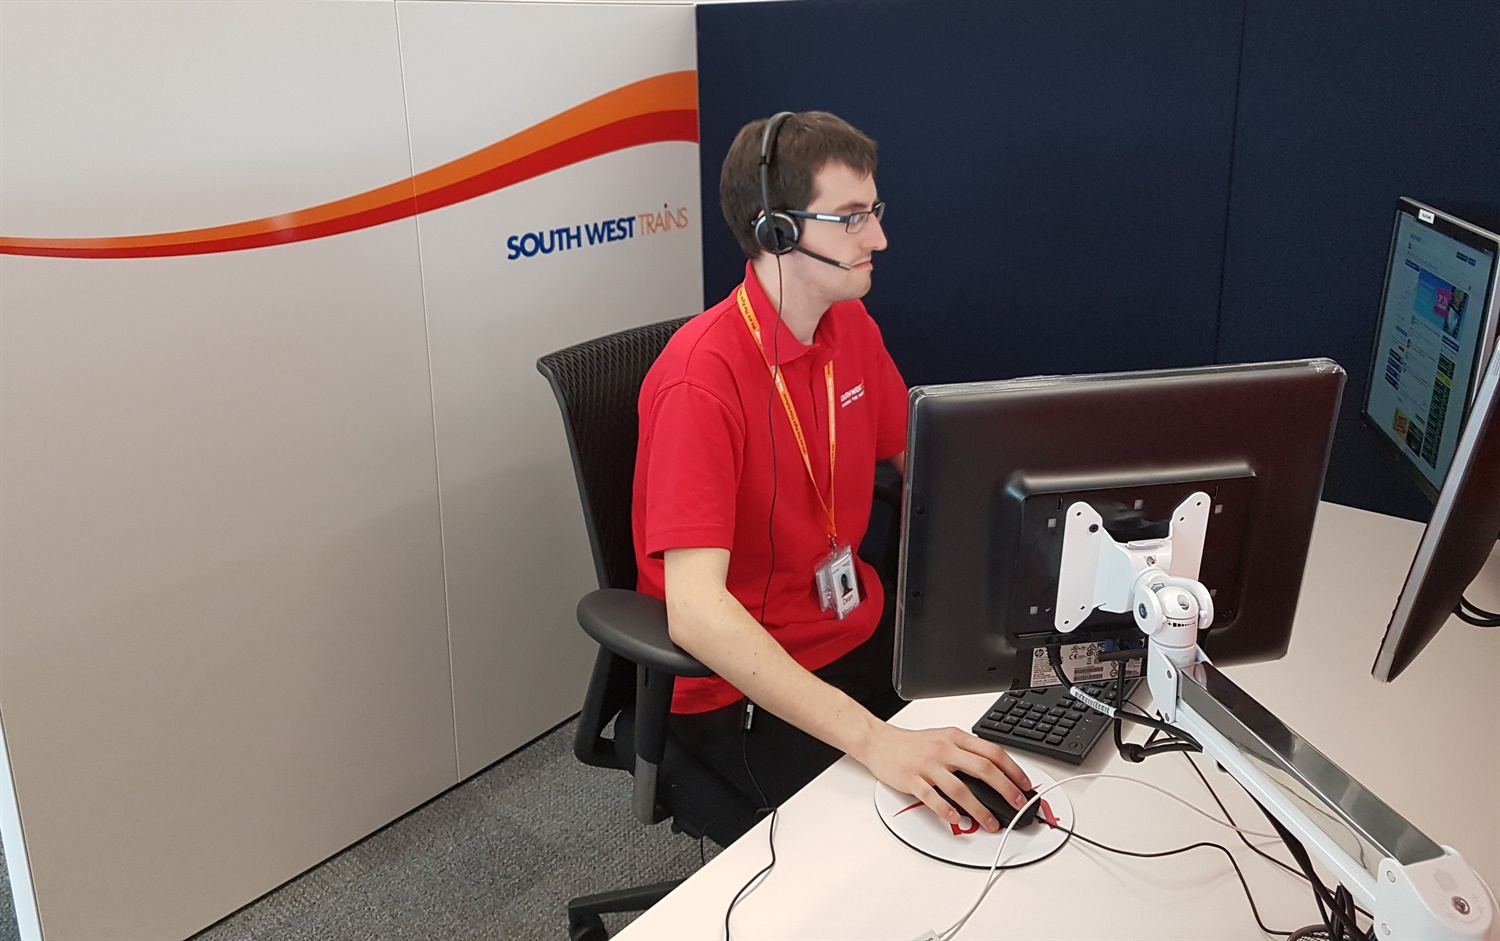 South West Trains opens first video customer contact centre